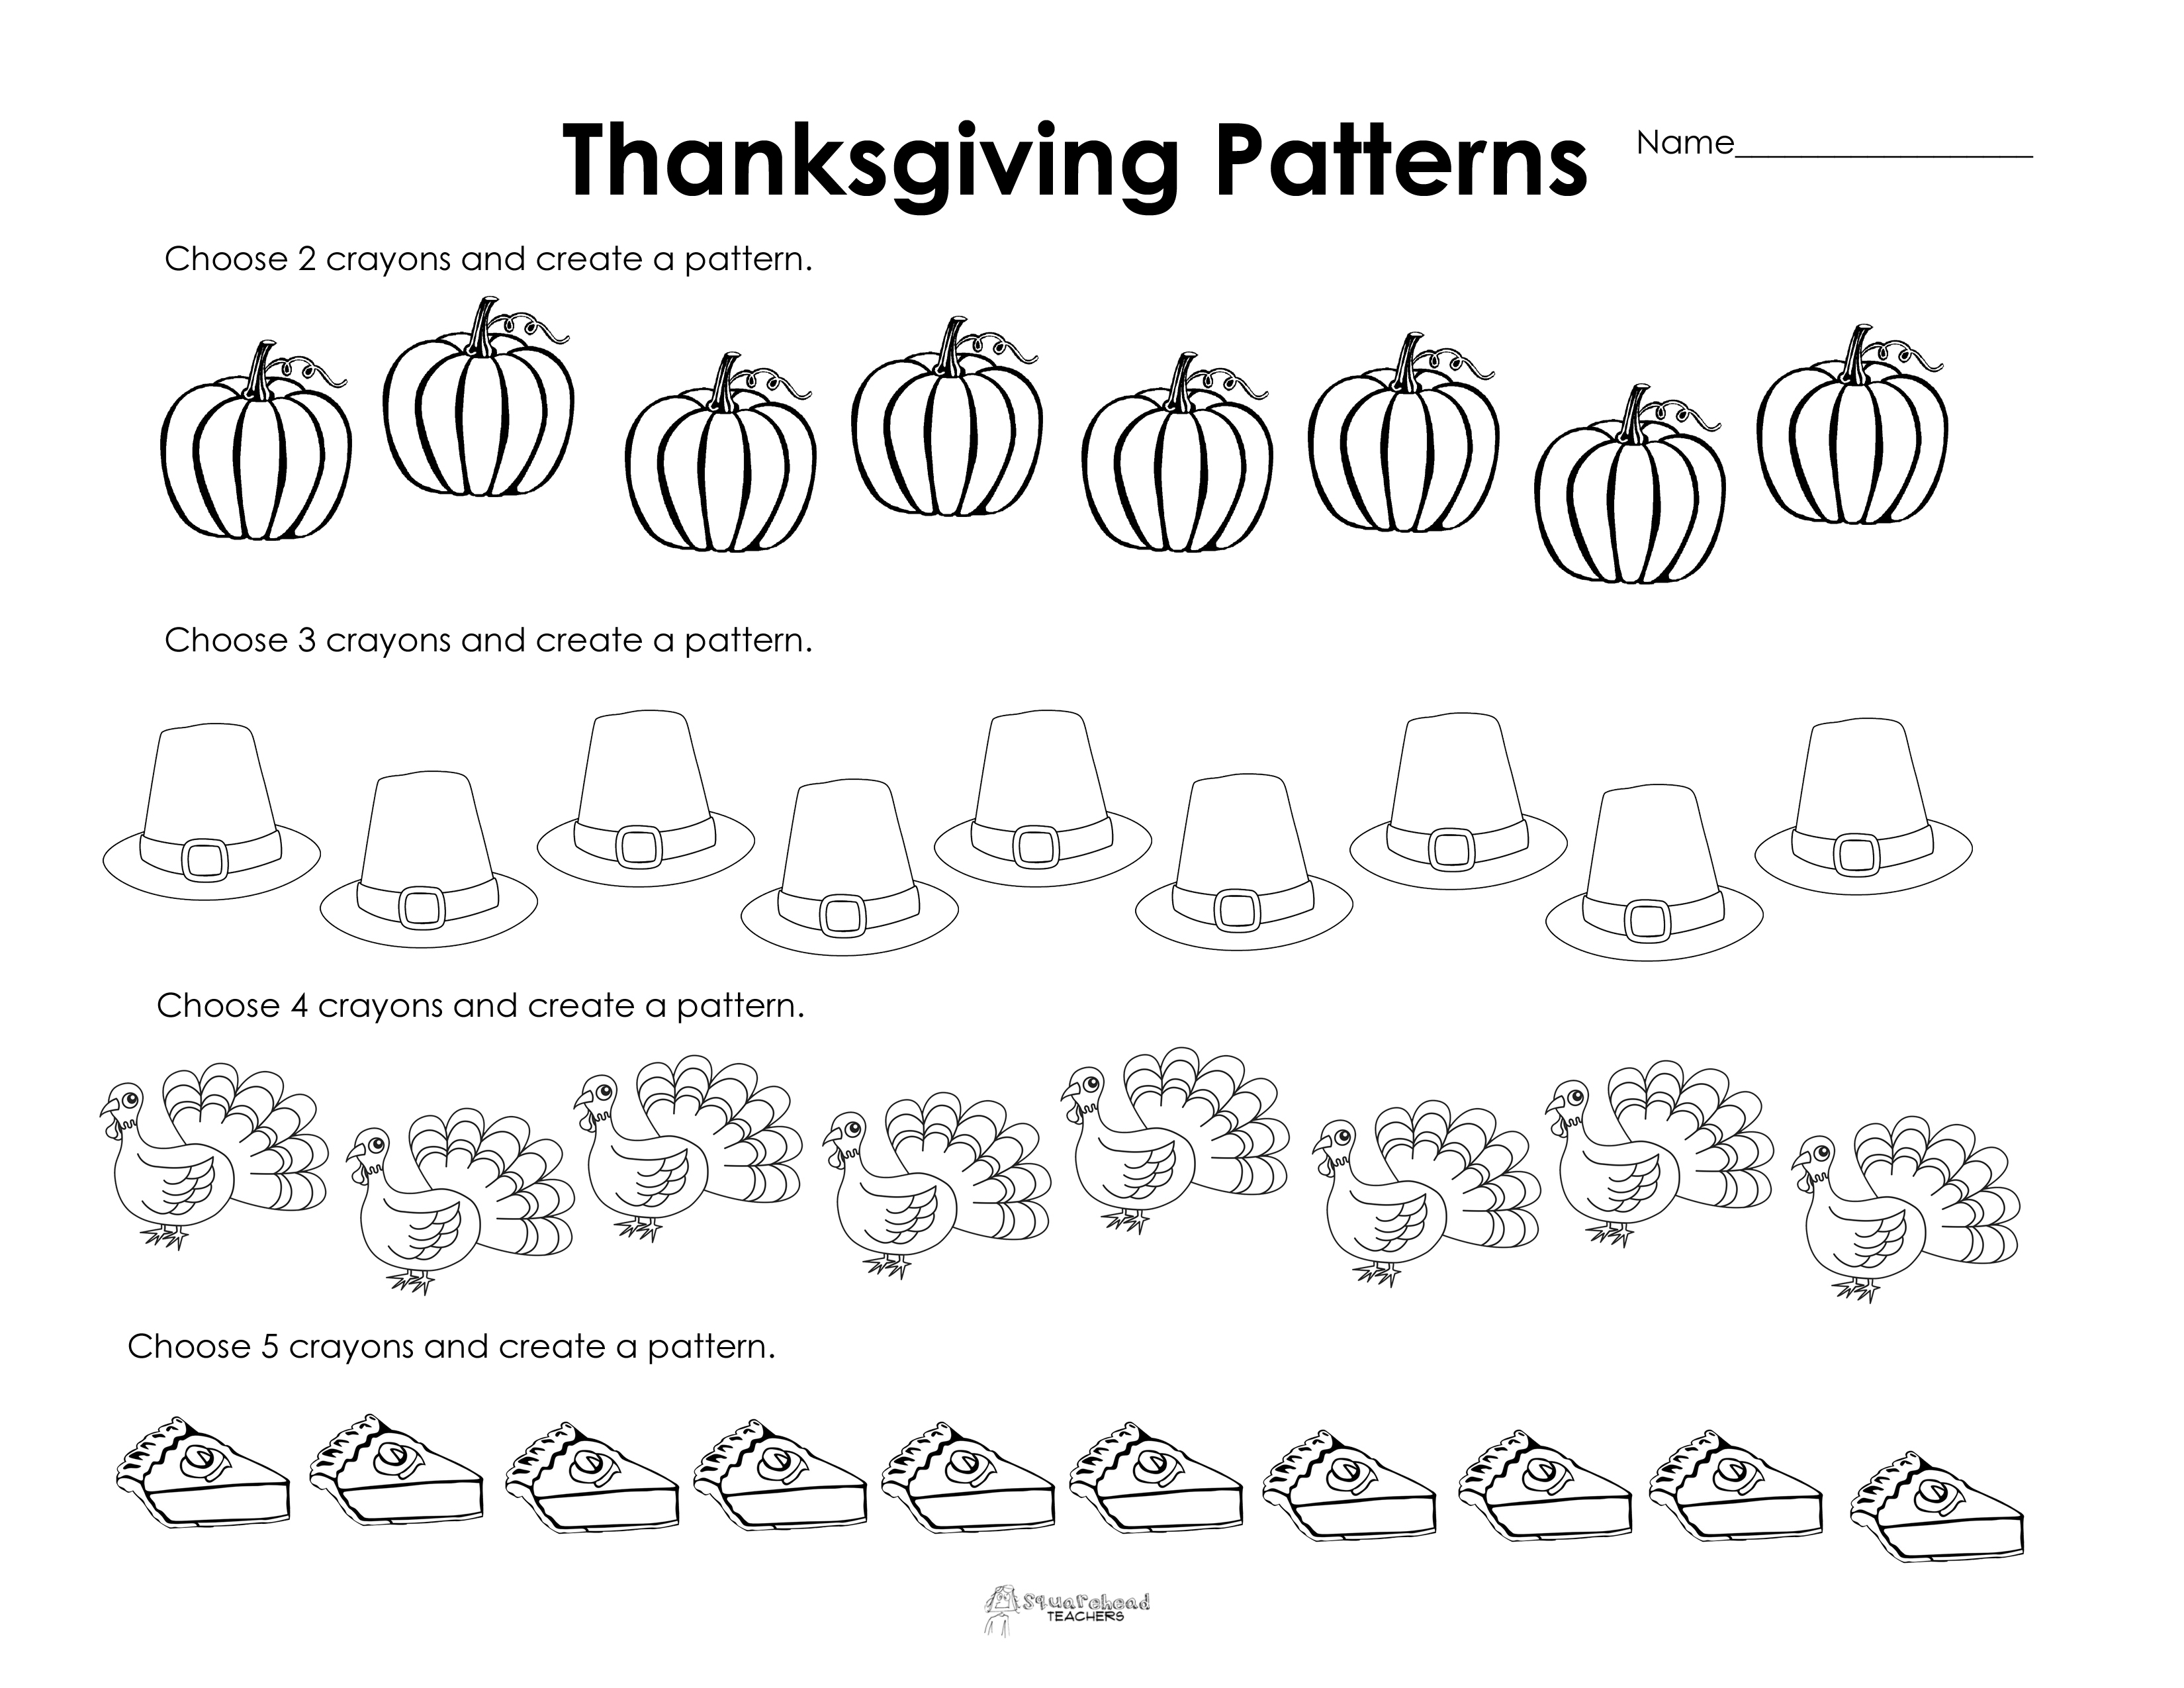 Free Printable Thanksgiving Worksheets For Preschoolers - 8.13 - Free Printable Thanksgiving Worksheets